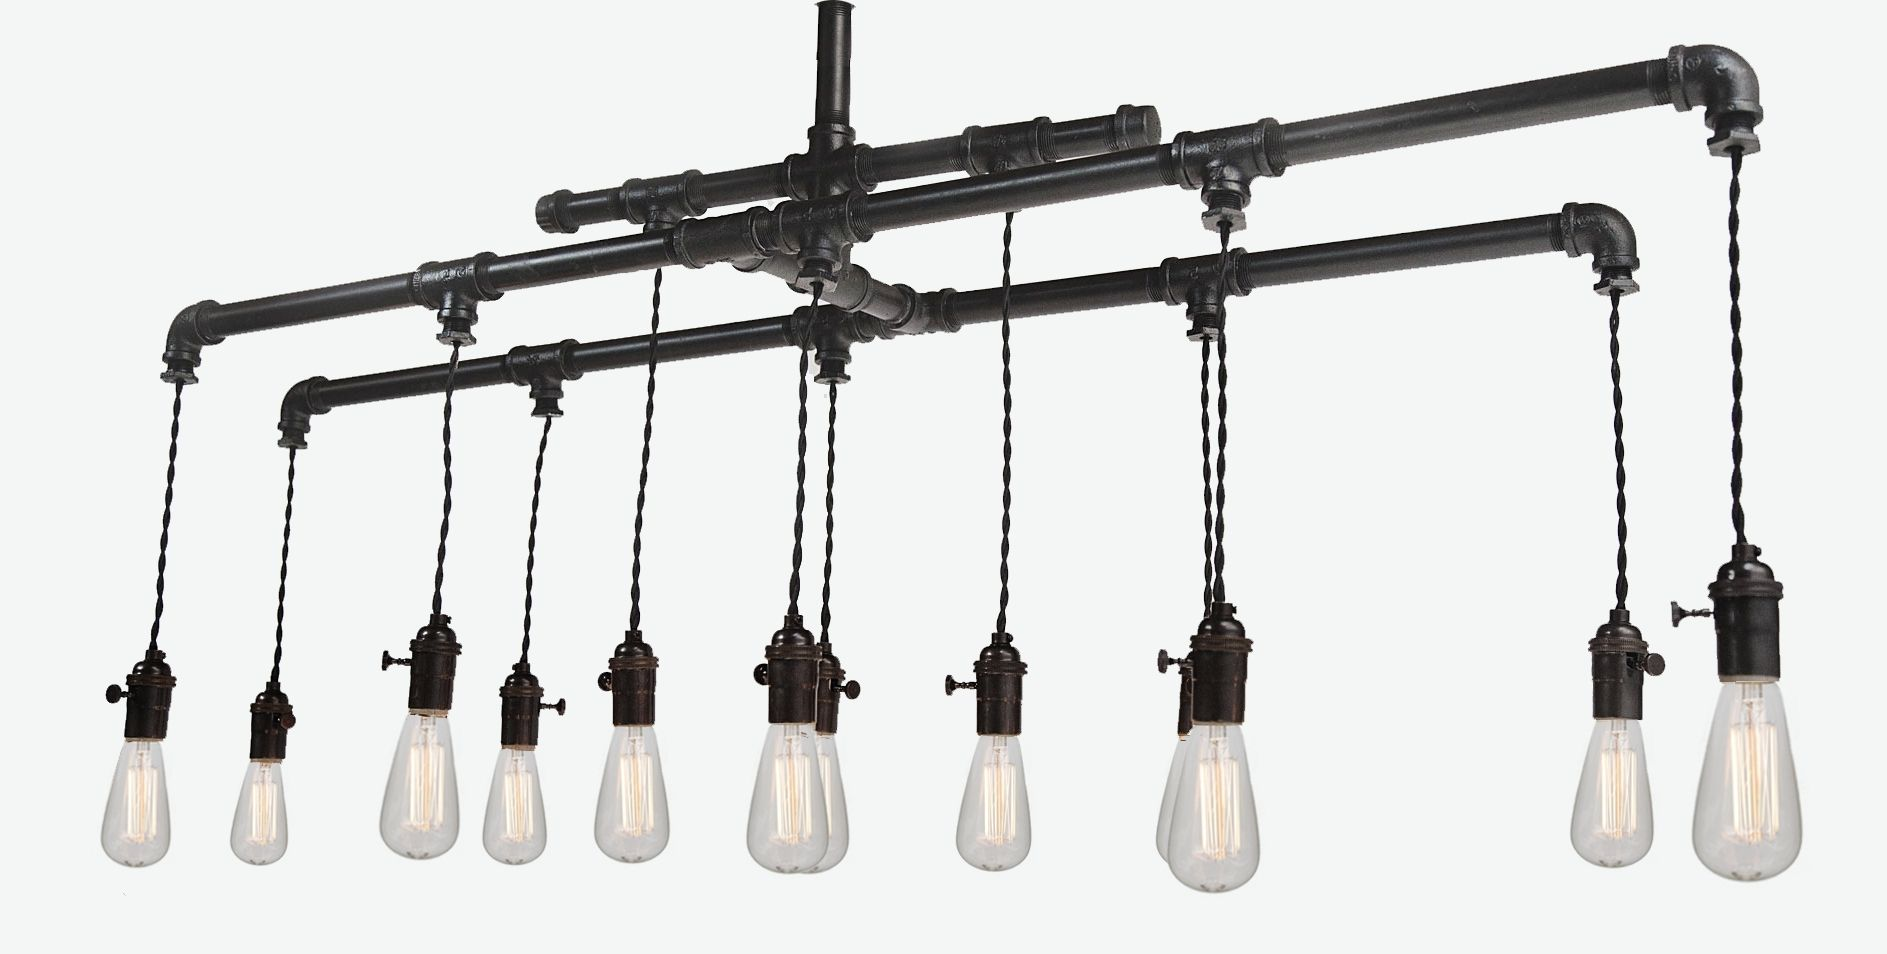 Custom industrial pipe edison chandelier with 12 bulbs by hammers custom made industrial pipe edison chandelier with 12 bulbs aloadofball Images